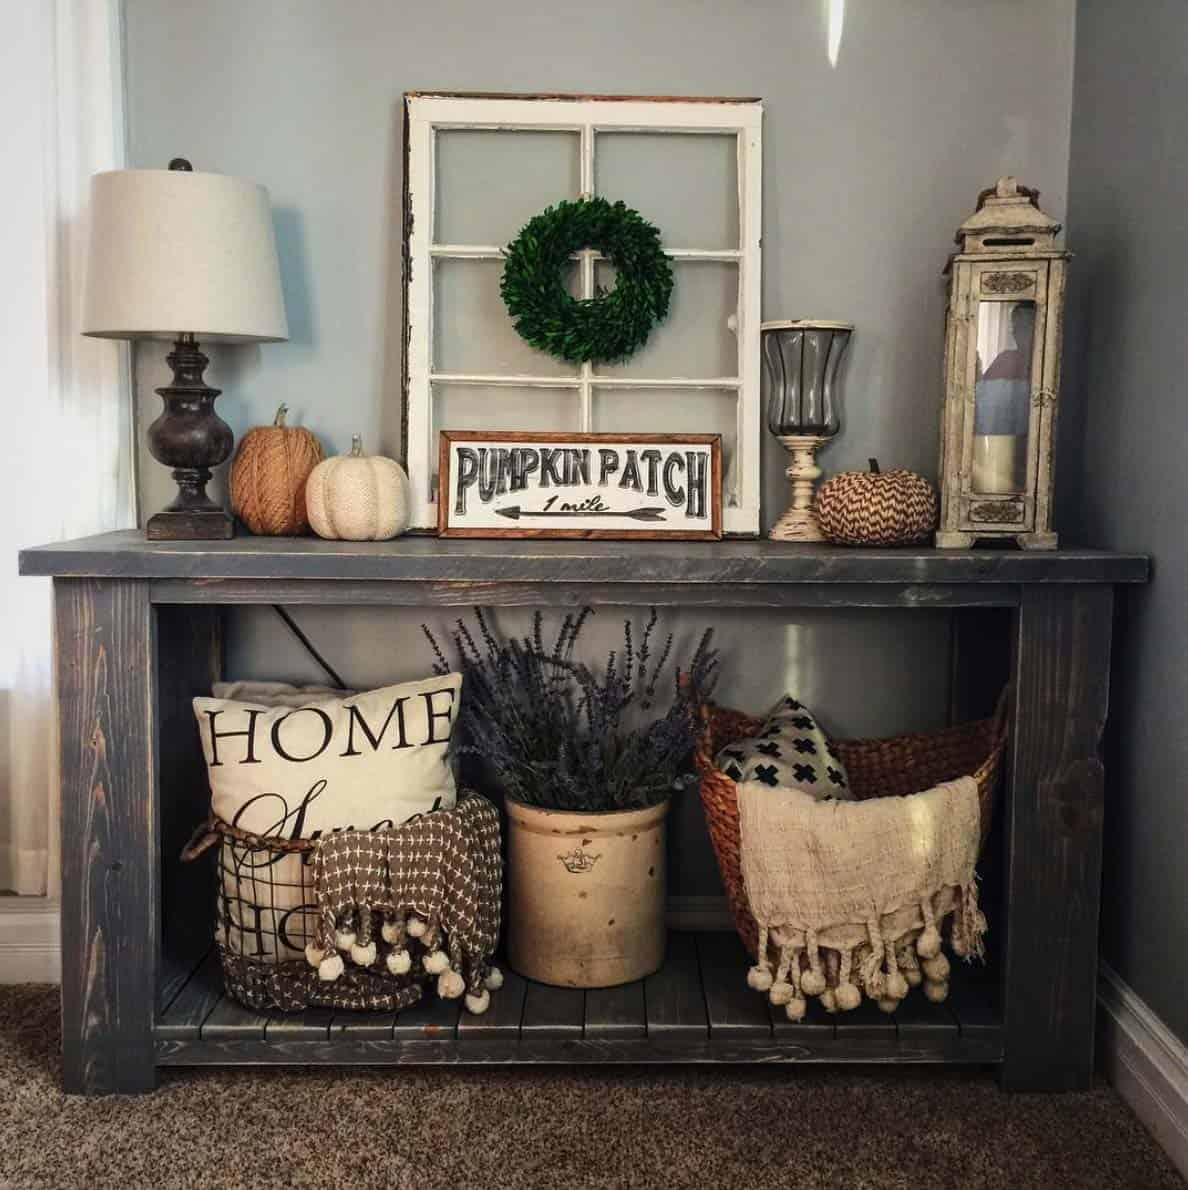 Decorate With Style 16 Chic Coffee Table Decor Ideas: 23 Amazing Ways To Style Your Console Table With Fall Decor